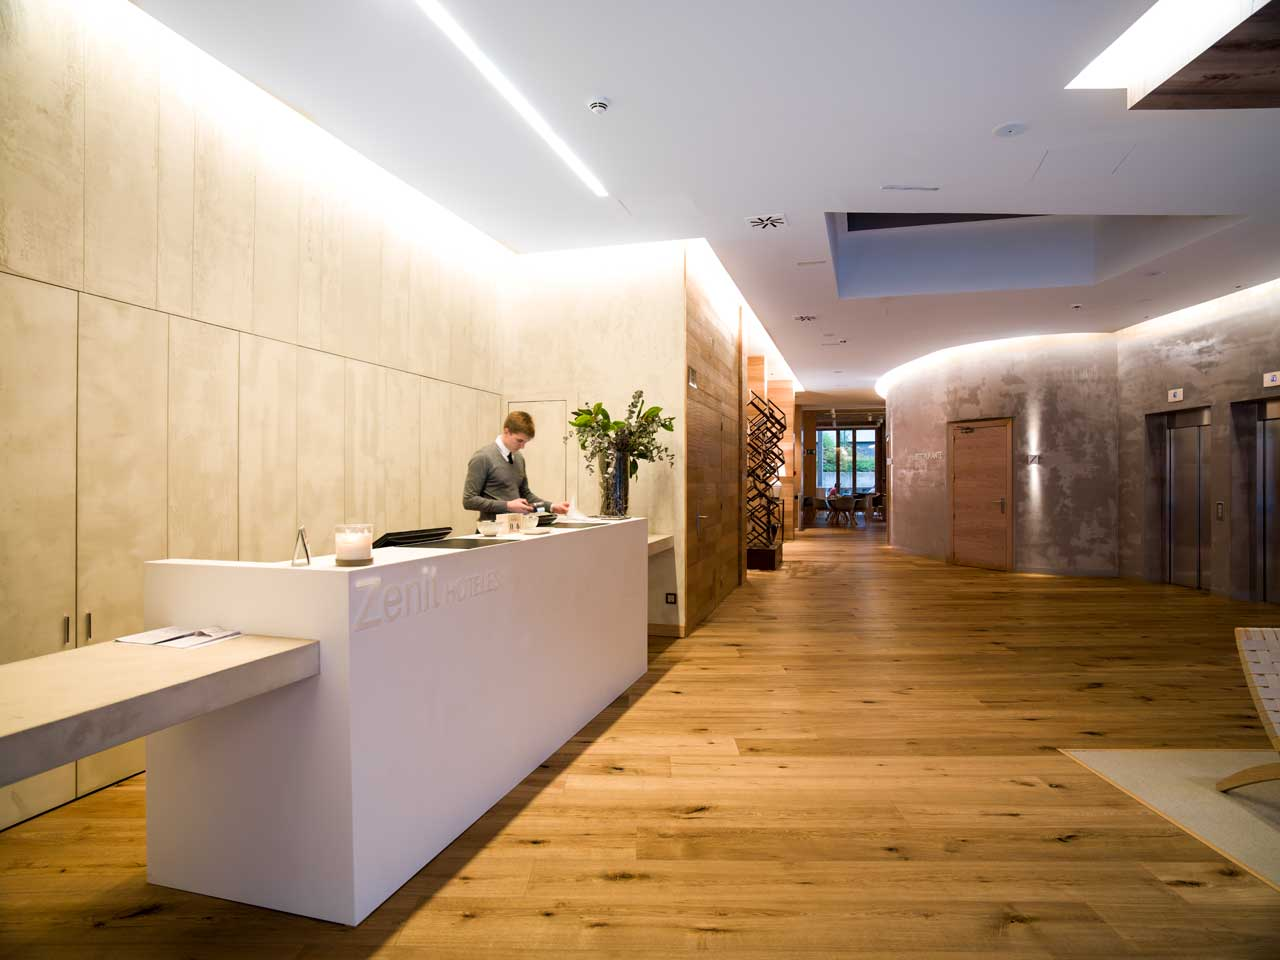 hotel zenit - san sebastian - españa. Solid Surface for commercial furniture